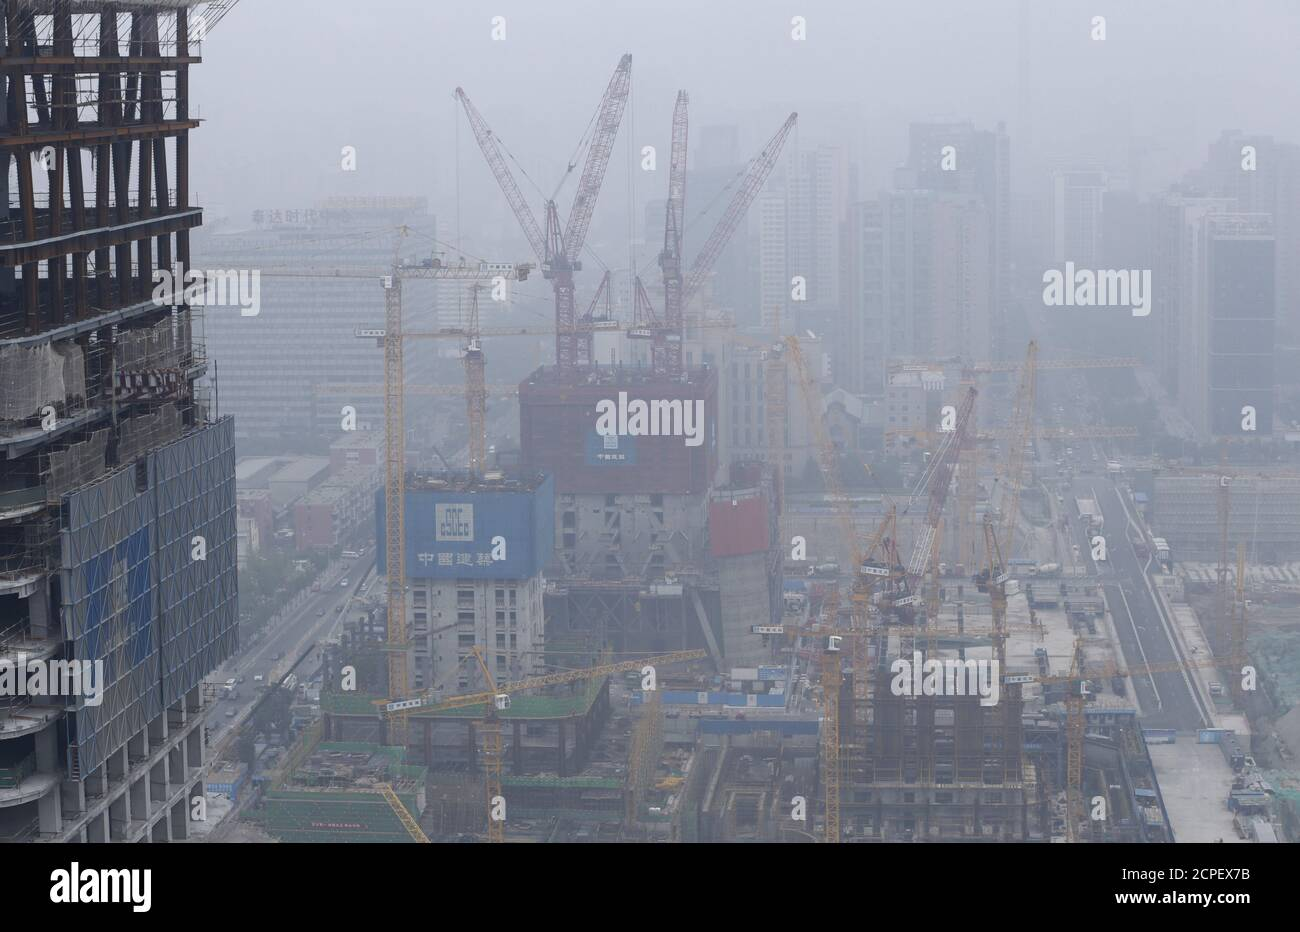 Construction sites are seen on a hazy day in Beijing's central business district June 25, 2015. U.S. President Barack Obama is expected to press Chinese leader Xi Jinping during the latter's state visit later this month on issues that have strained relations between the two countries, but his approach will be tempered because for better or worse the world's two biggest economies are inextricably bound together. Picture taken on June 25, 2015. REUTERS/Jason Lee Stock Photo